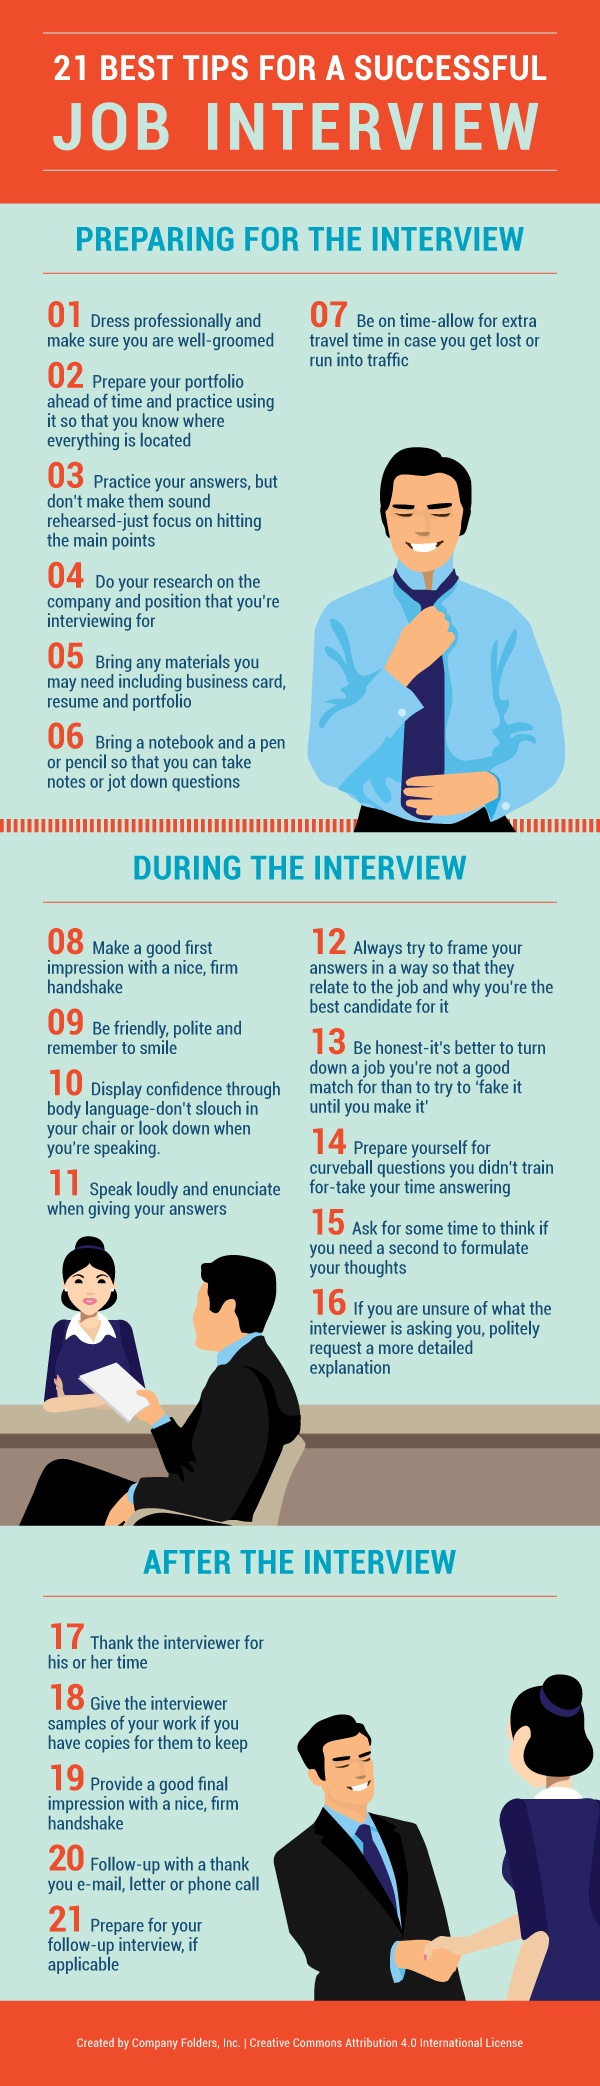 21 Tips for a Successful Job Interview Infographic